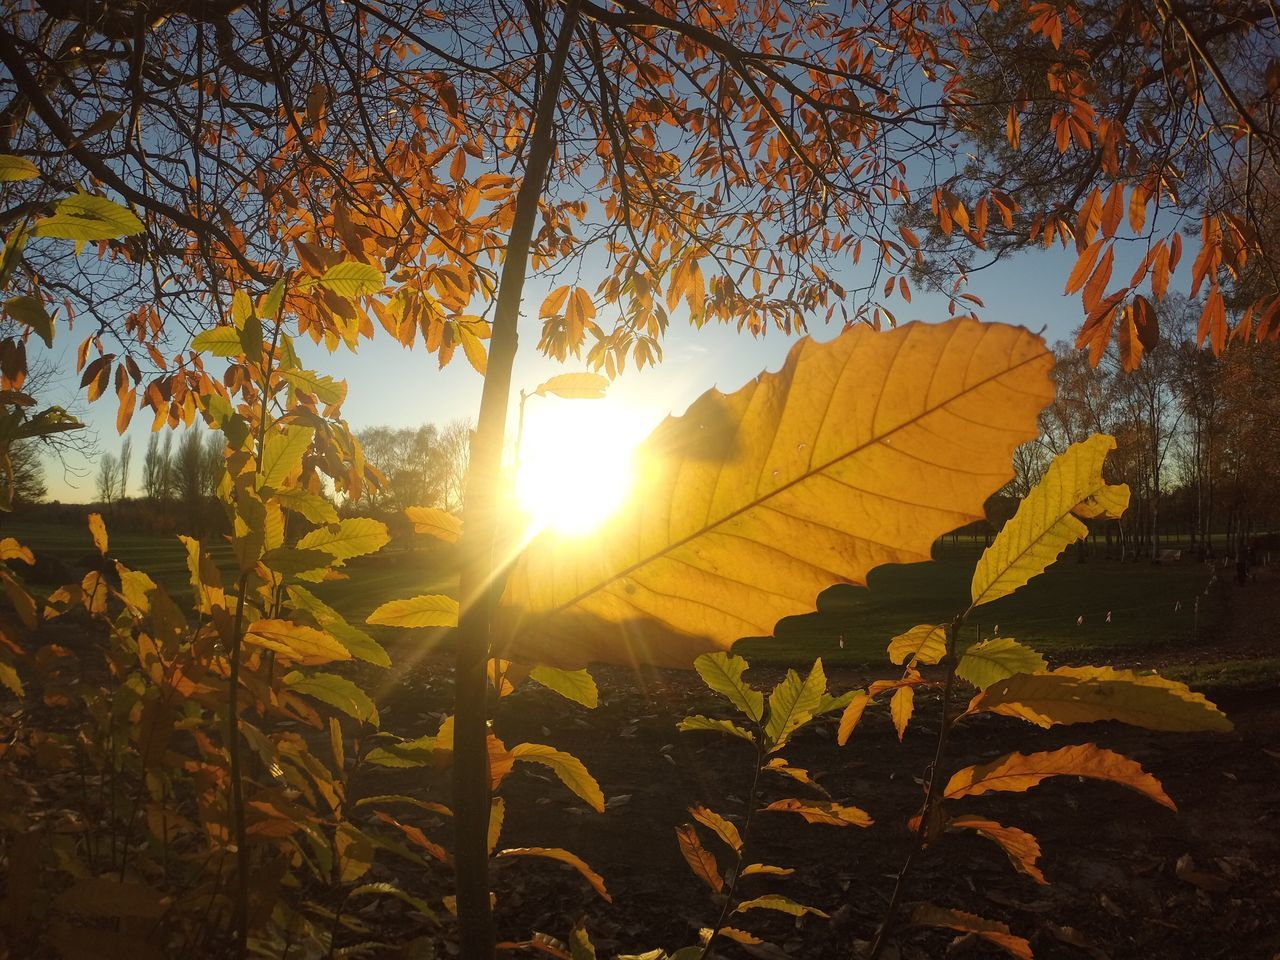 Sun Shining Thought The Leaves...x Leaf Sunlight Sun Nature Tree Sunbeam Growth Beauty In Nature Autumn Plant Sunset Sky Landscape Golfcourse Golf Course Winter Leaves First Eyeem Photo FirstEyeEmPic